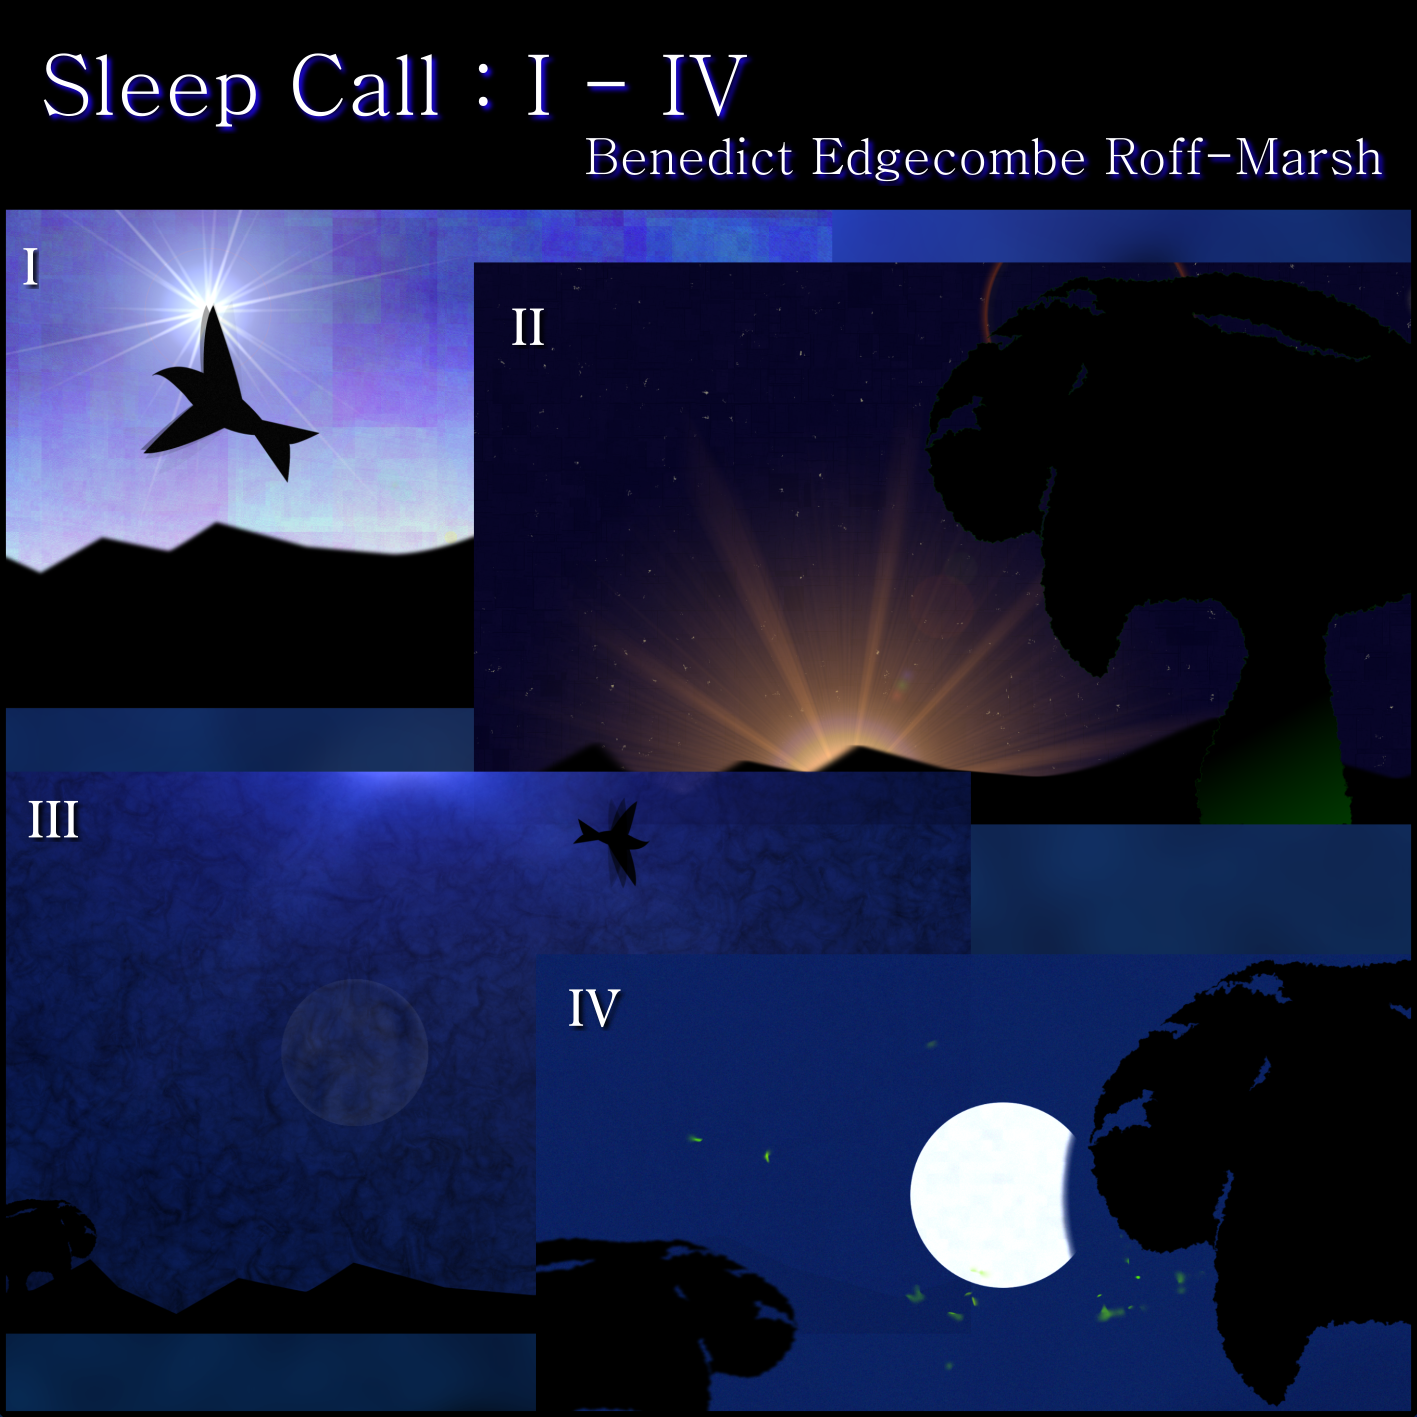 Sleep Call I-IV